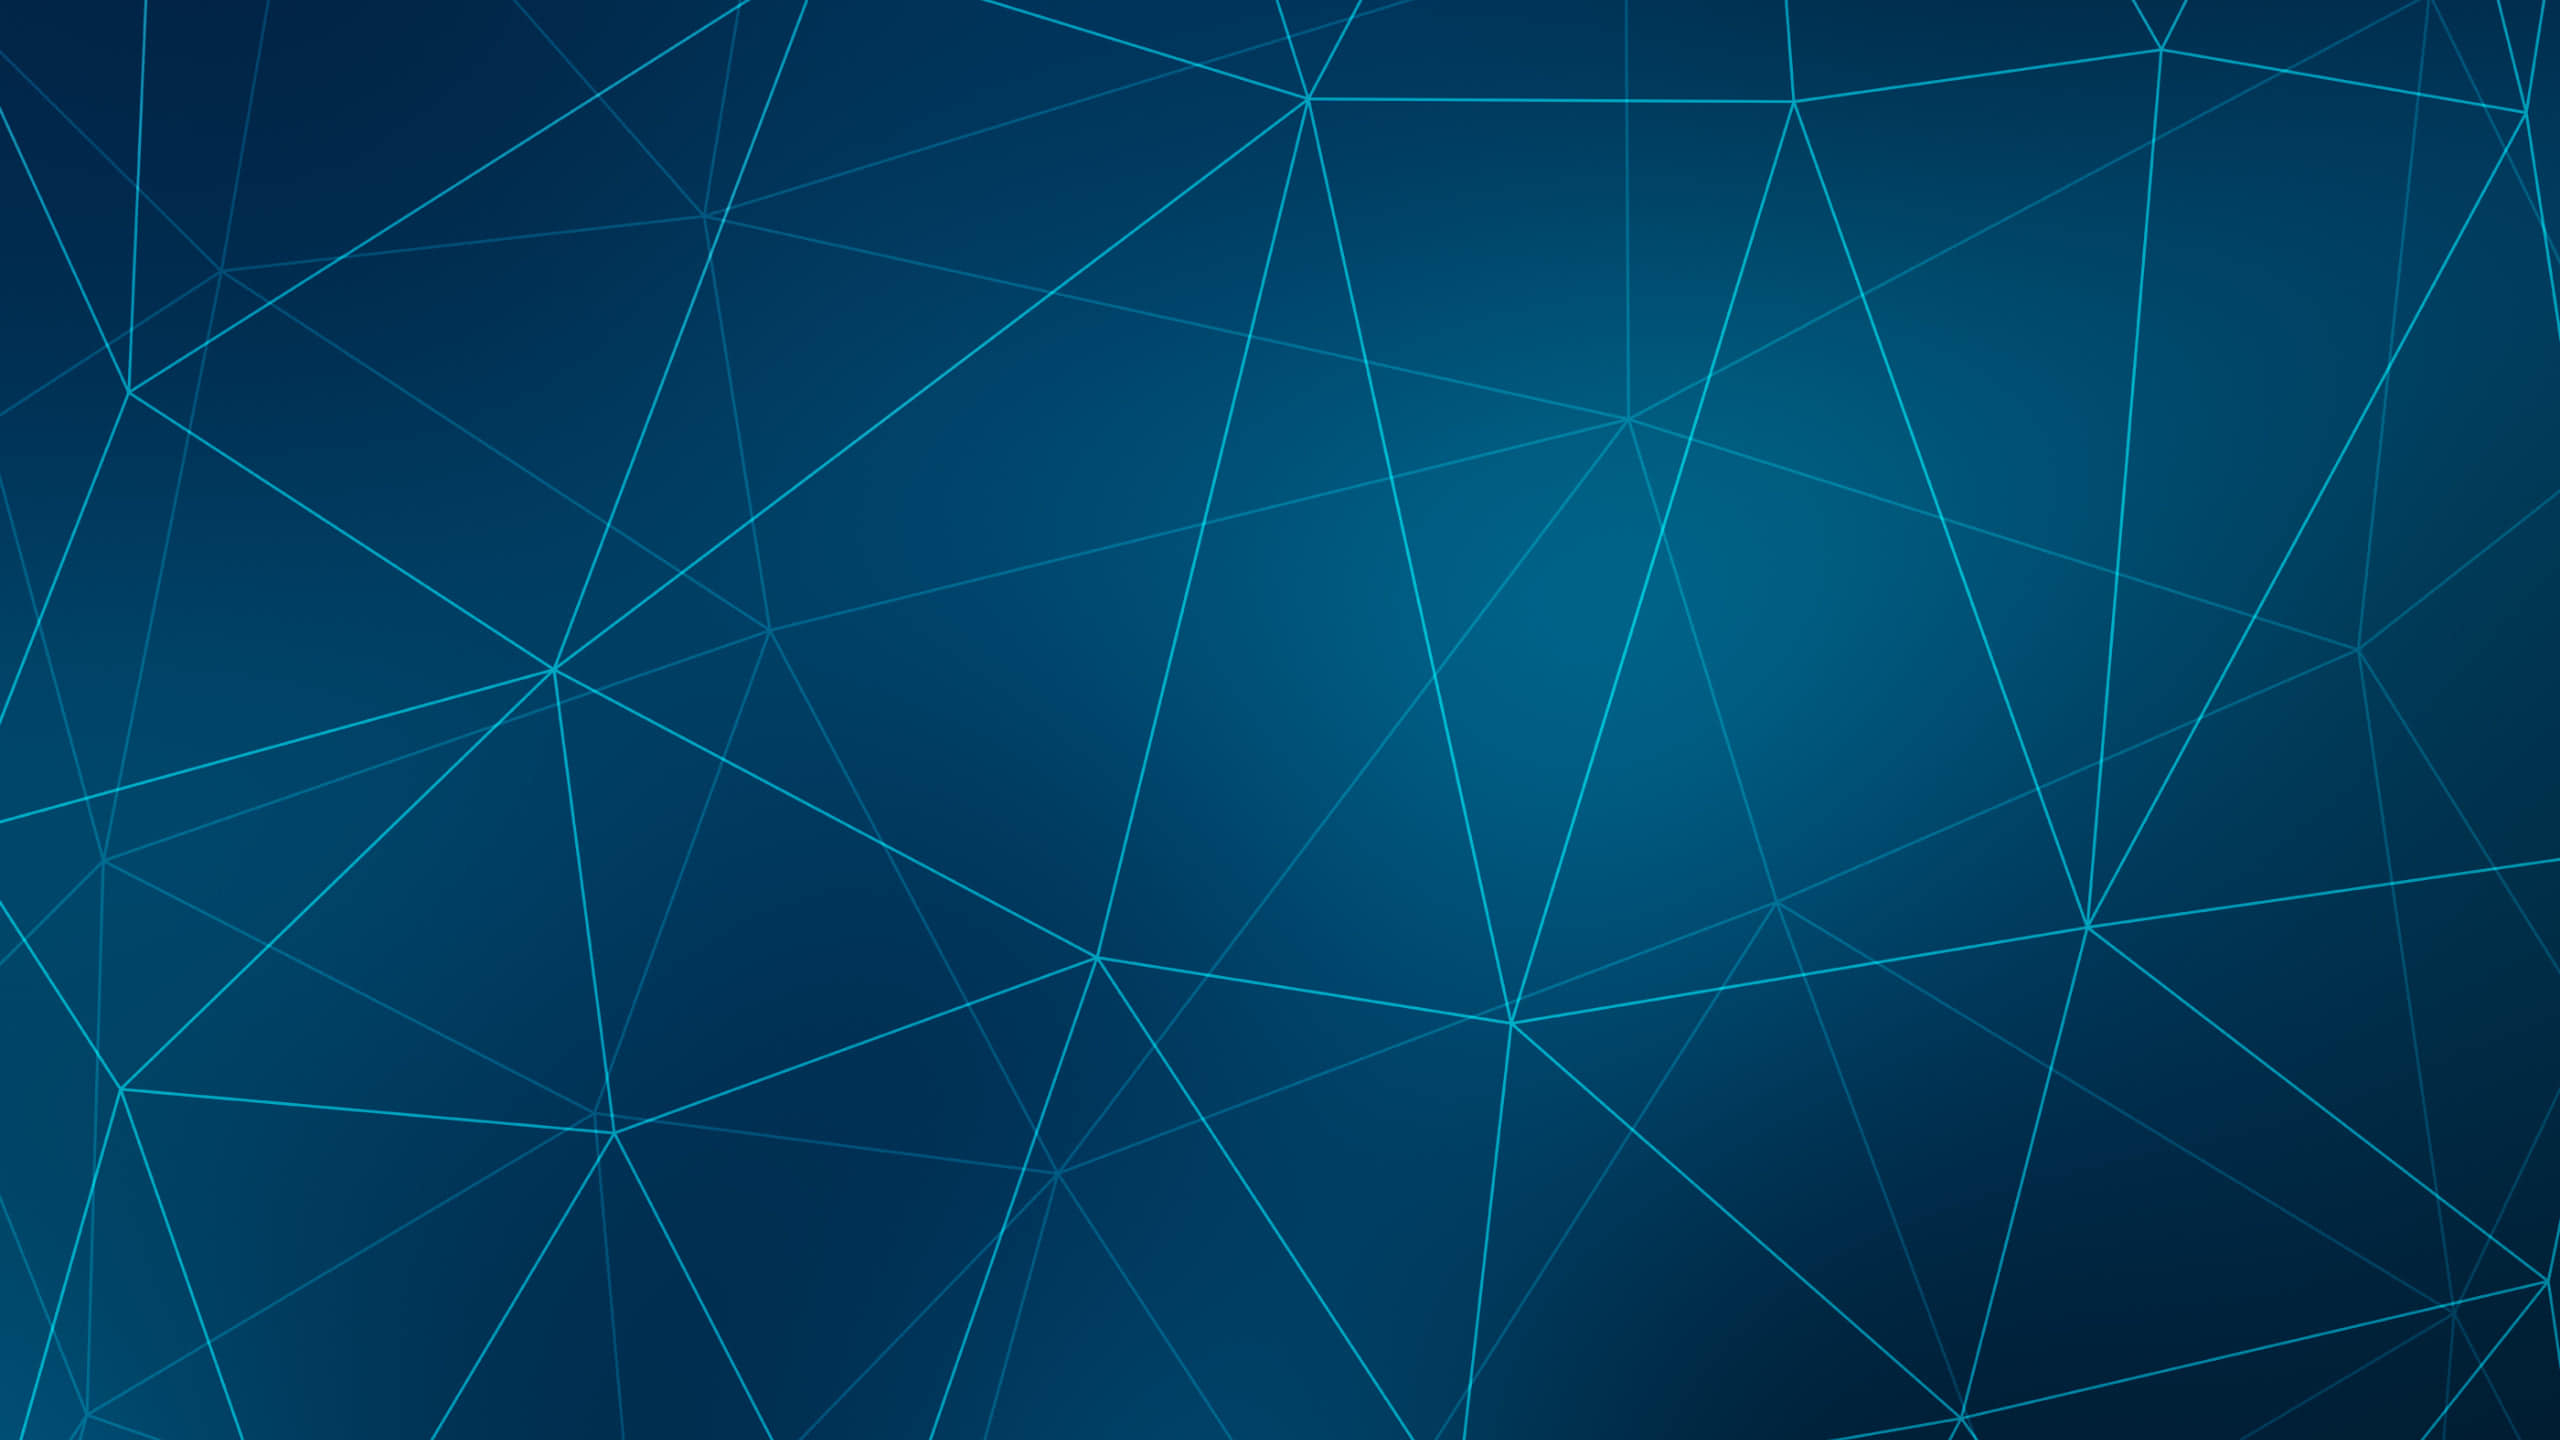 polygons network blue wqhd 1440p wallpaper